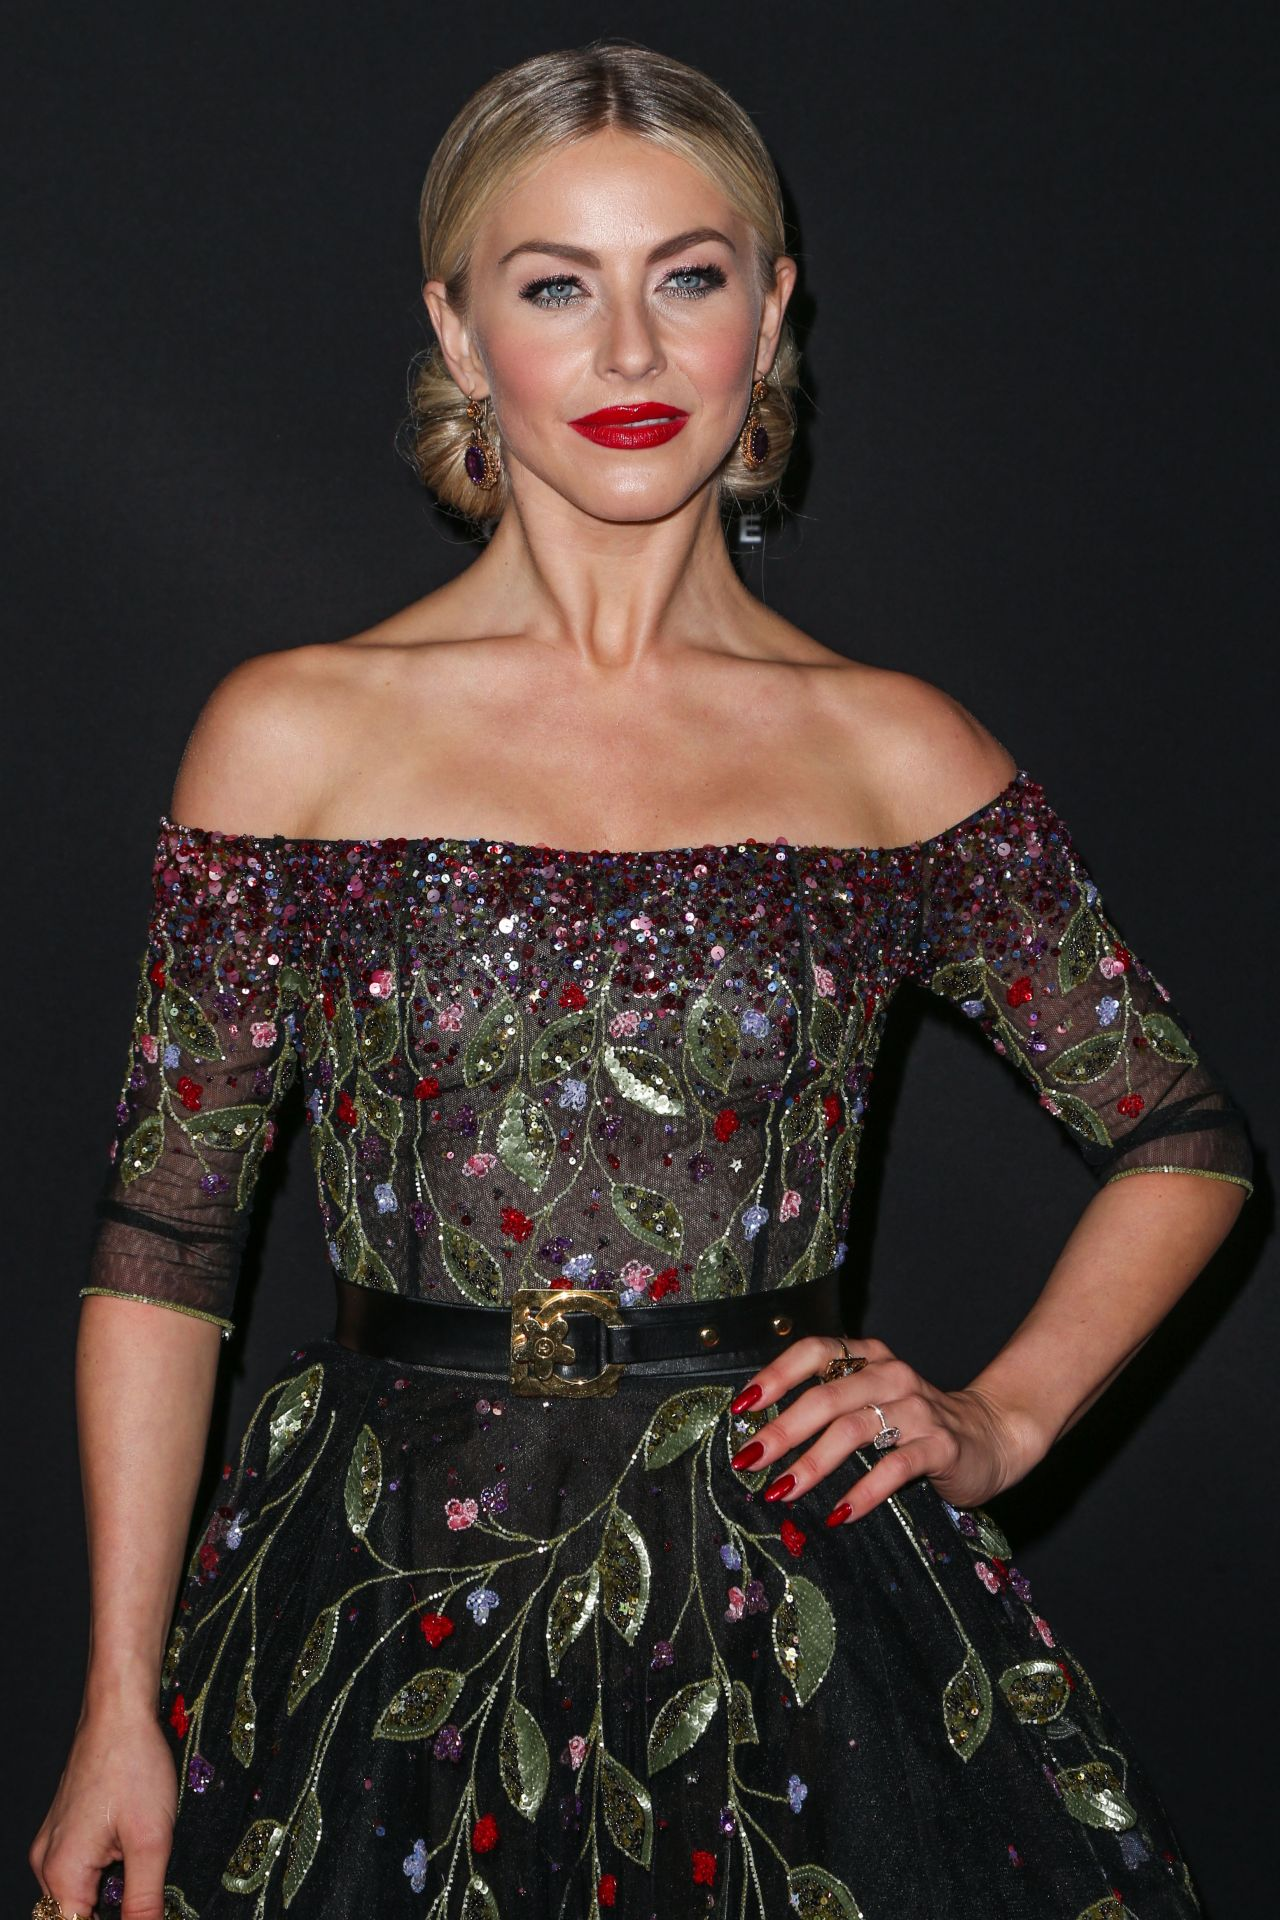 Julianne Hough News, Pictures, and Videos | TMZ.com